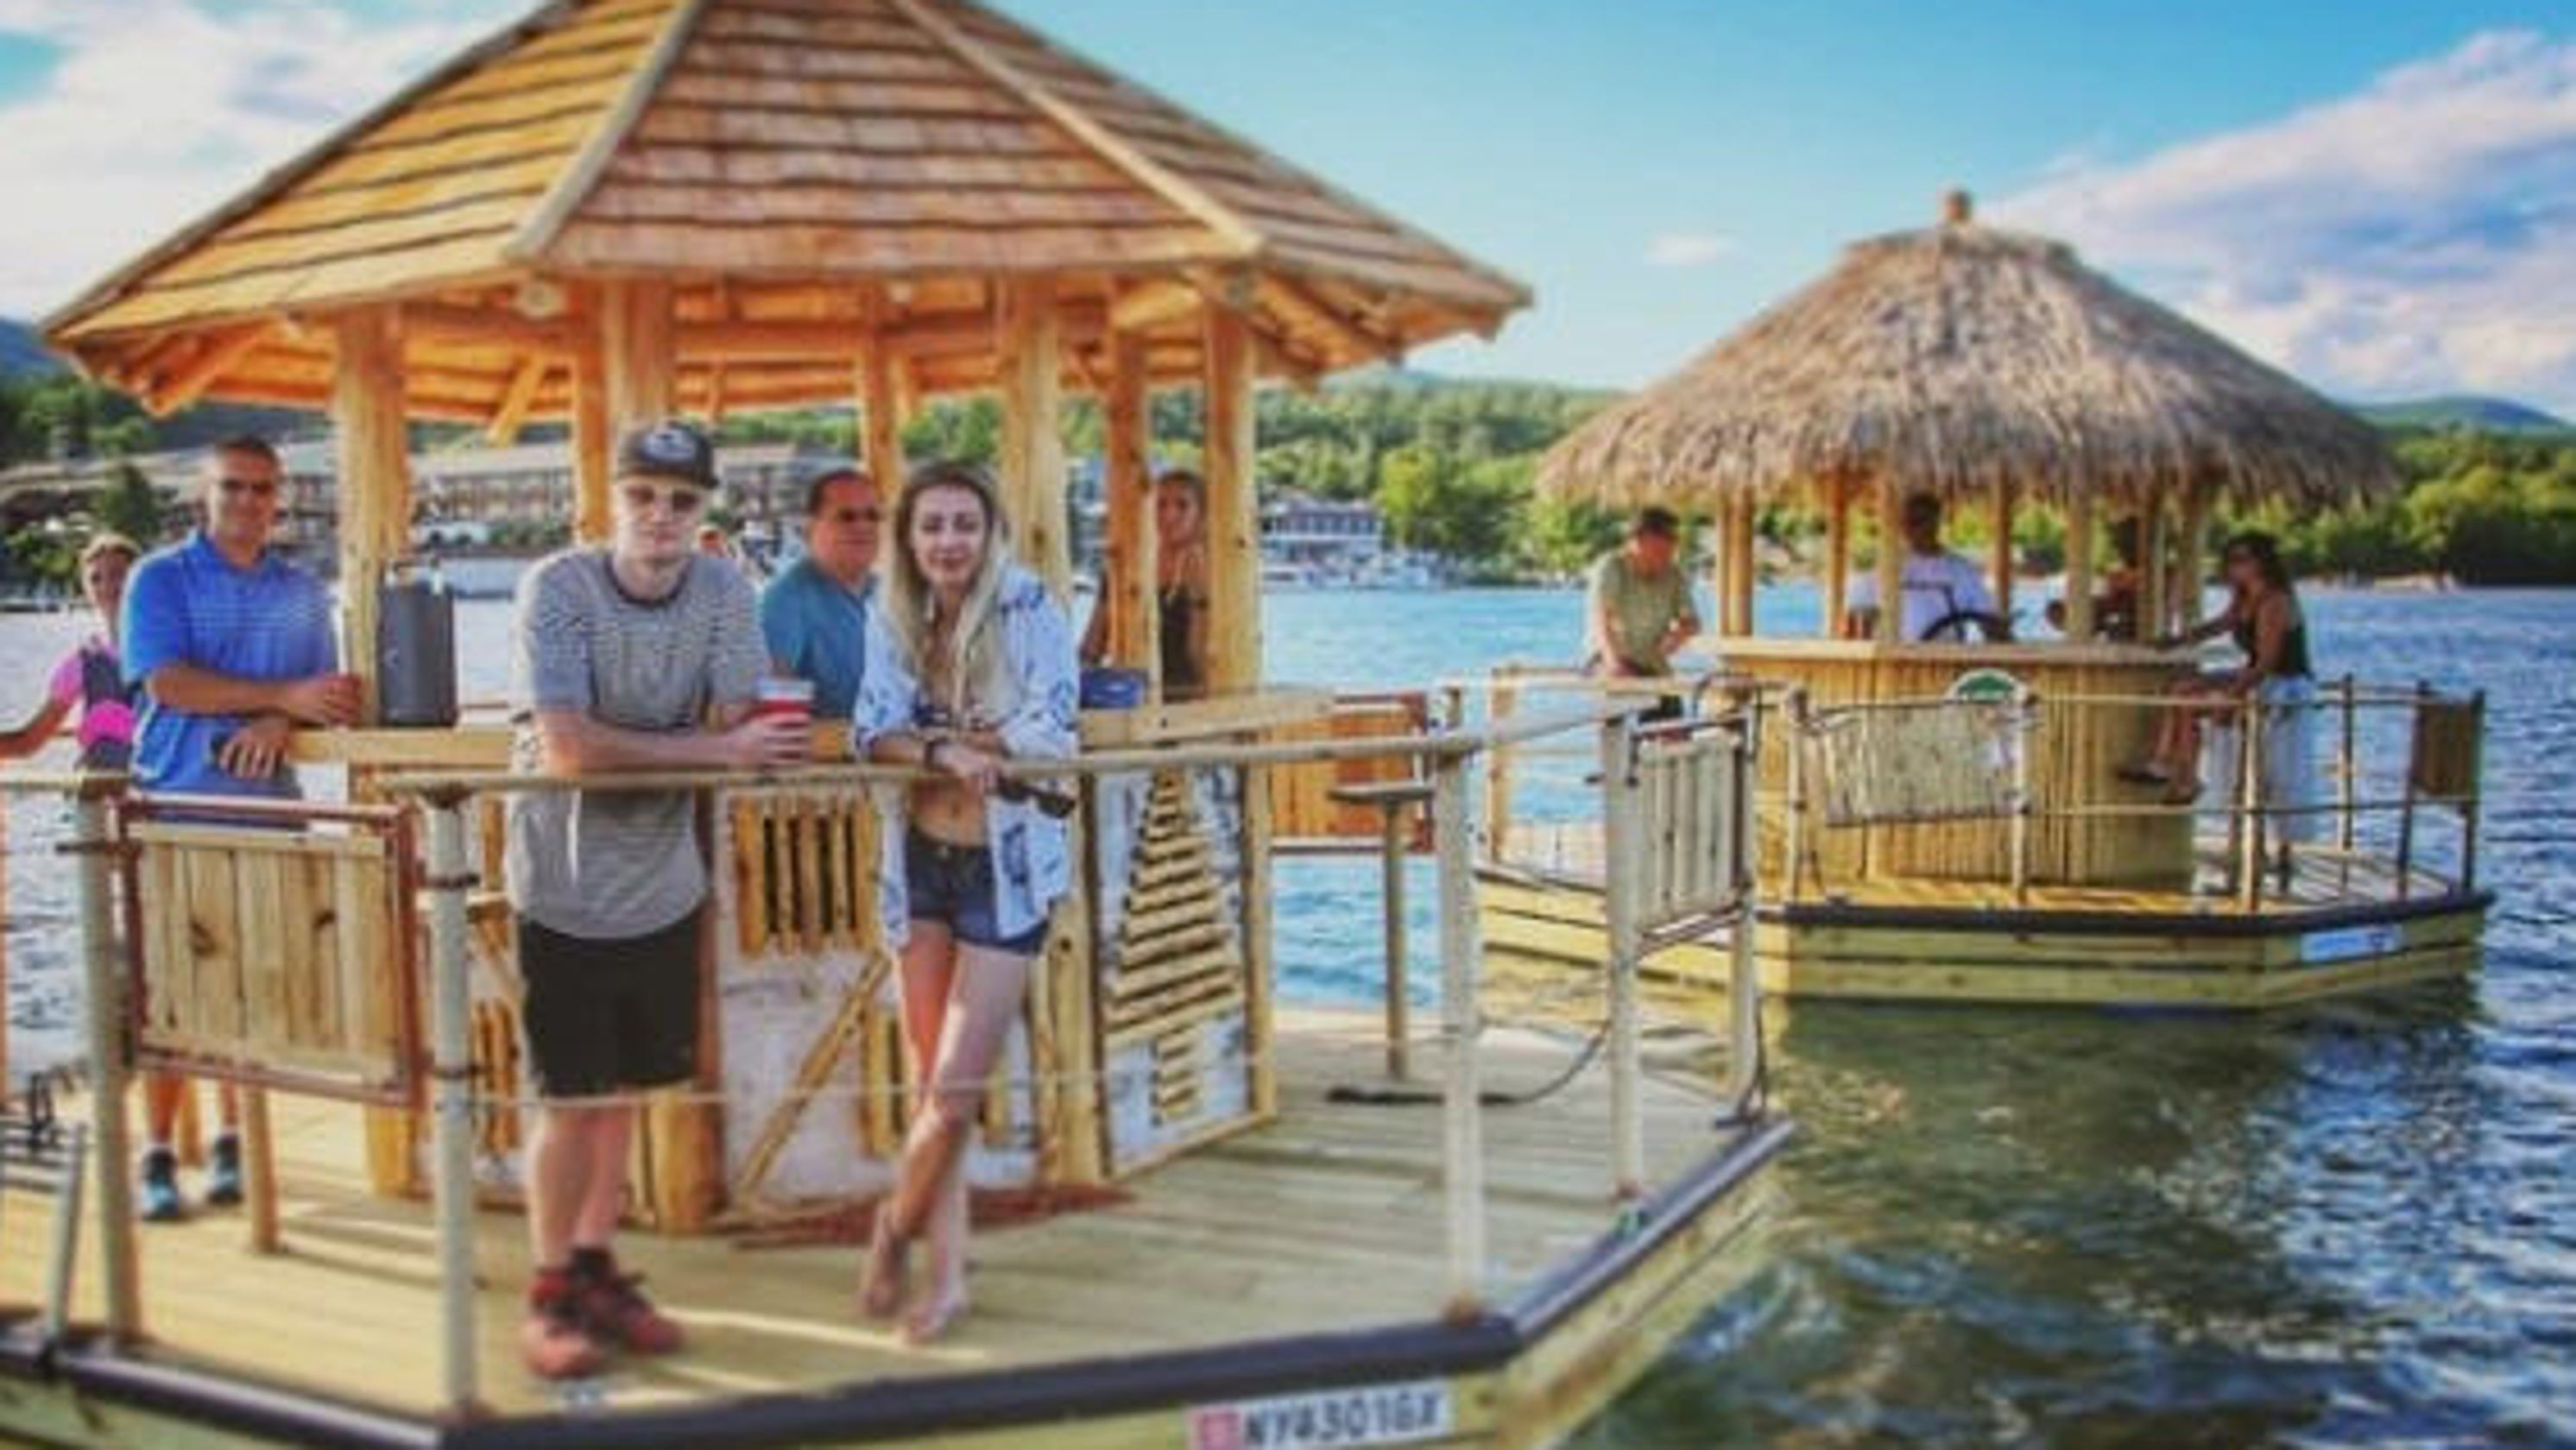 Taste Of Hawaii Coming To Michigan With Tiki Boat Tours On